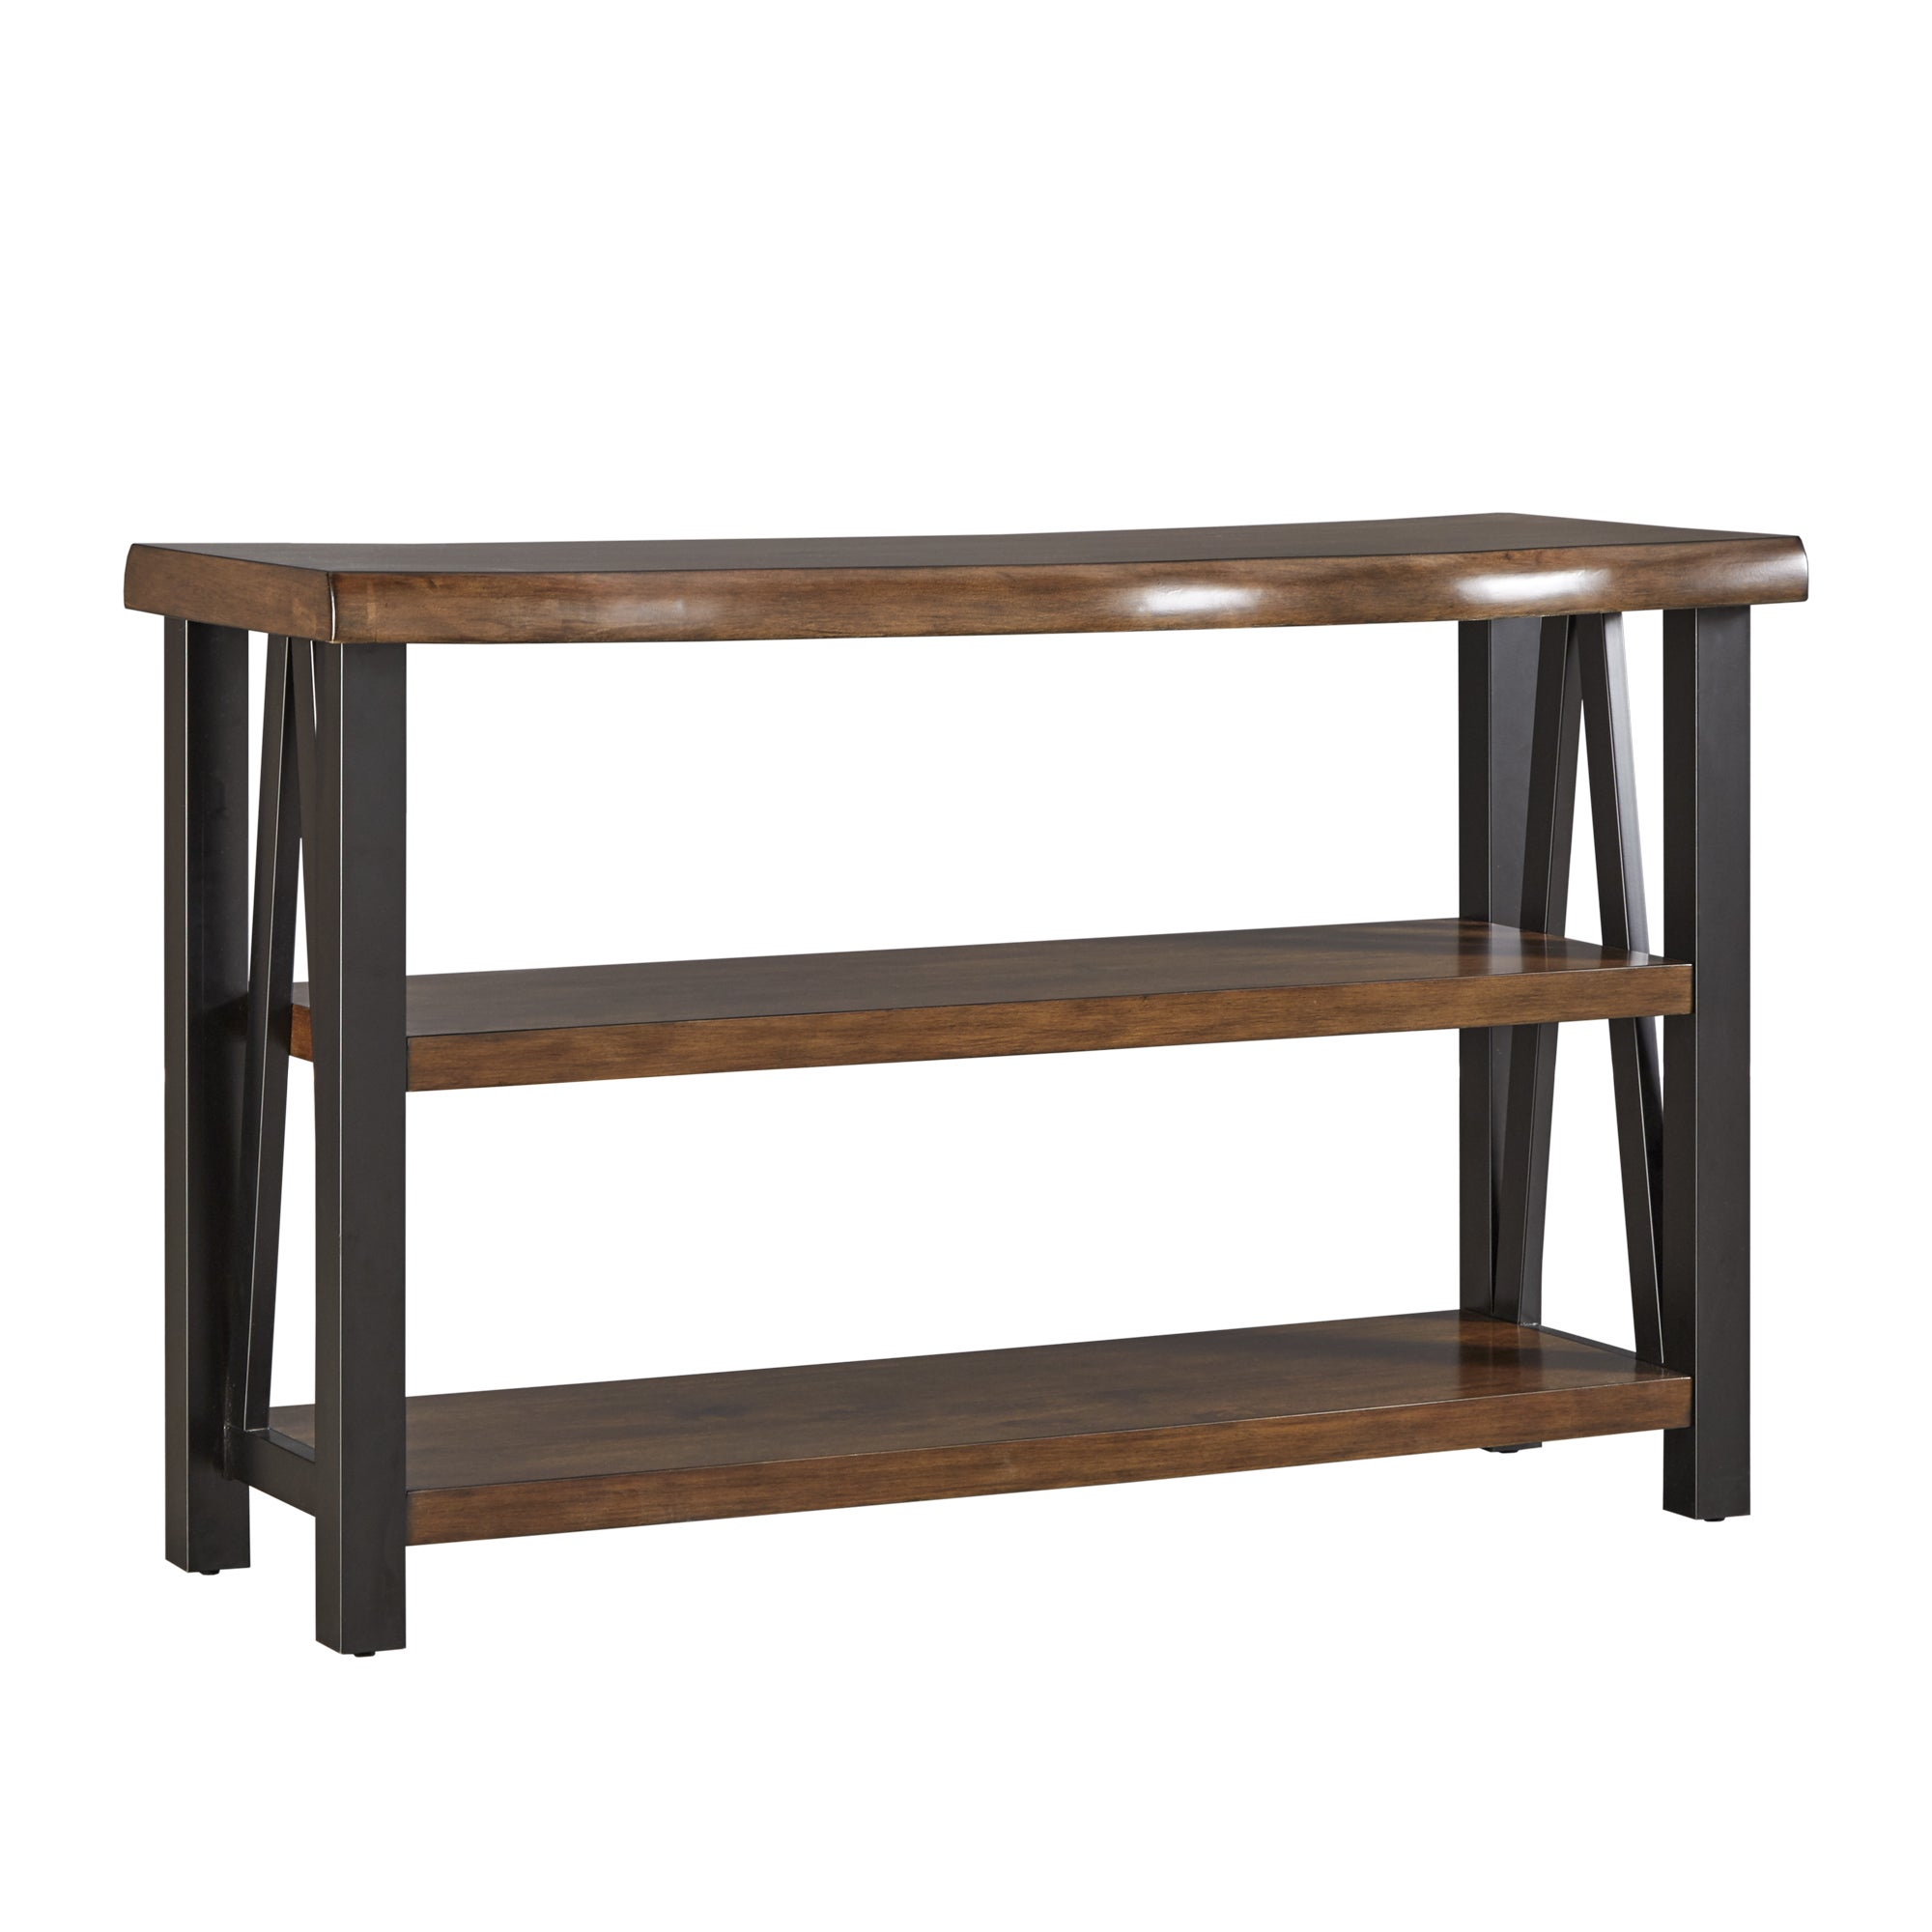 Banyan Live Edge Wood And Metal Console Sofa Table Bookshelf By Inspire Q